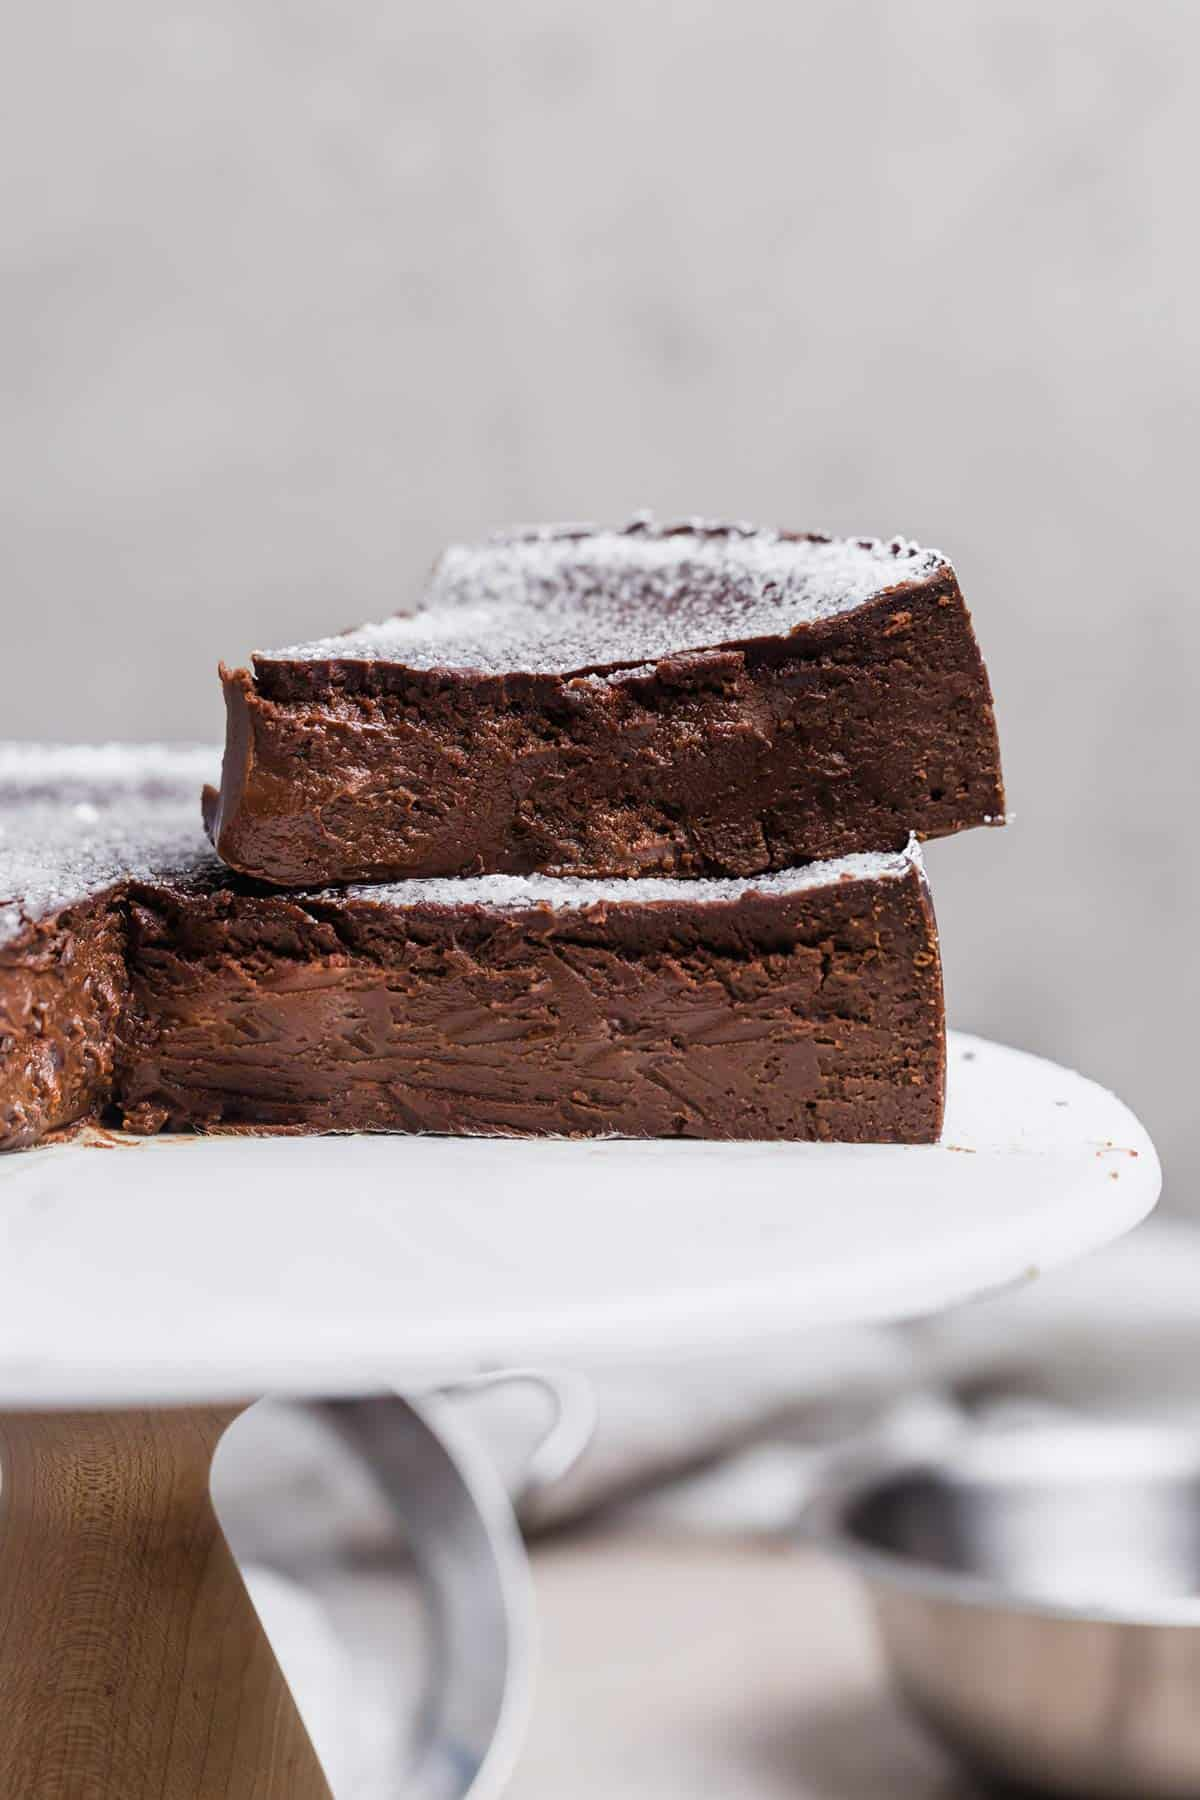 A slice of flourless chocolate cake on top of the chocolate cake on a white cake stand.